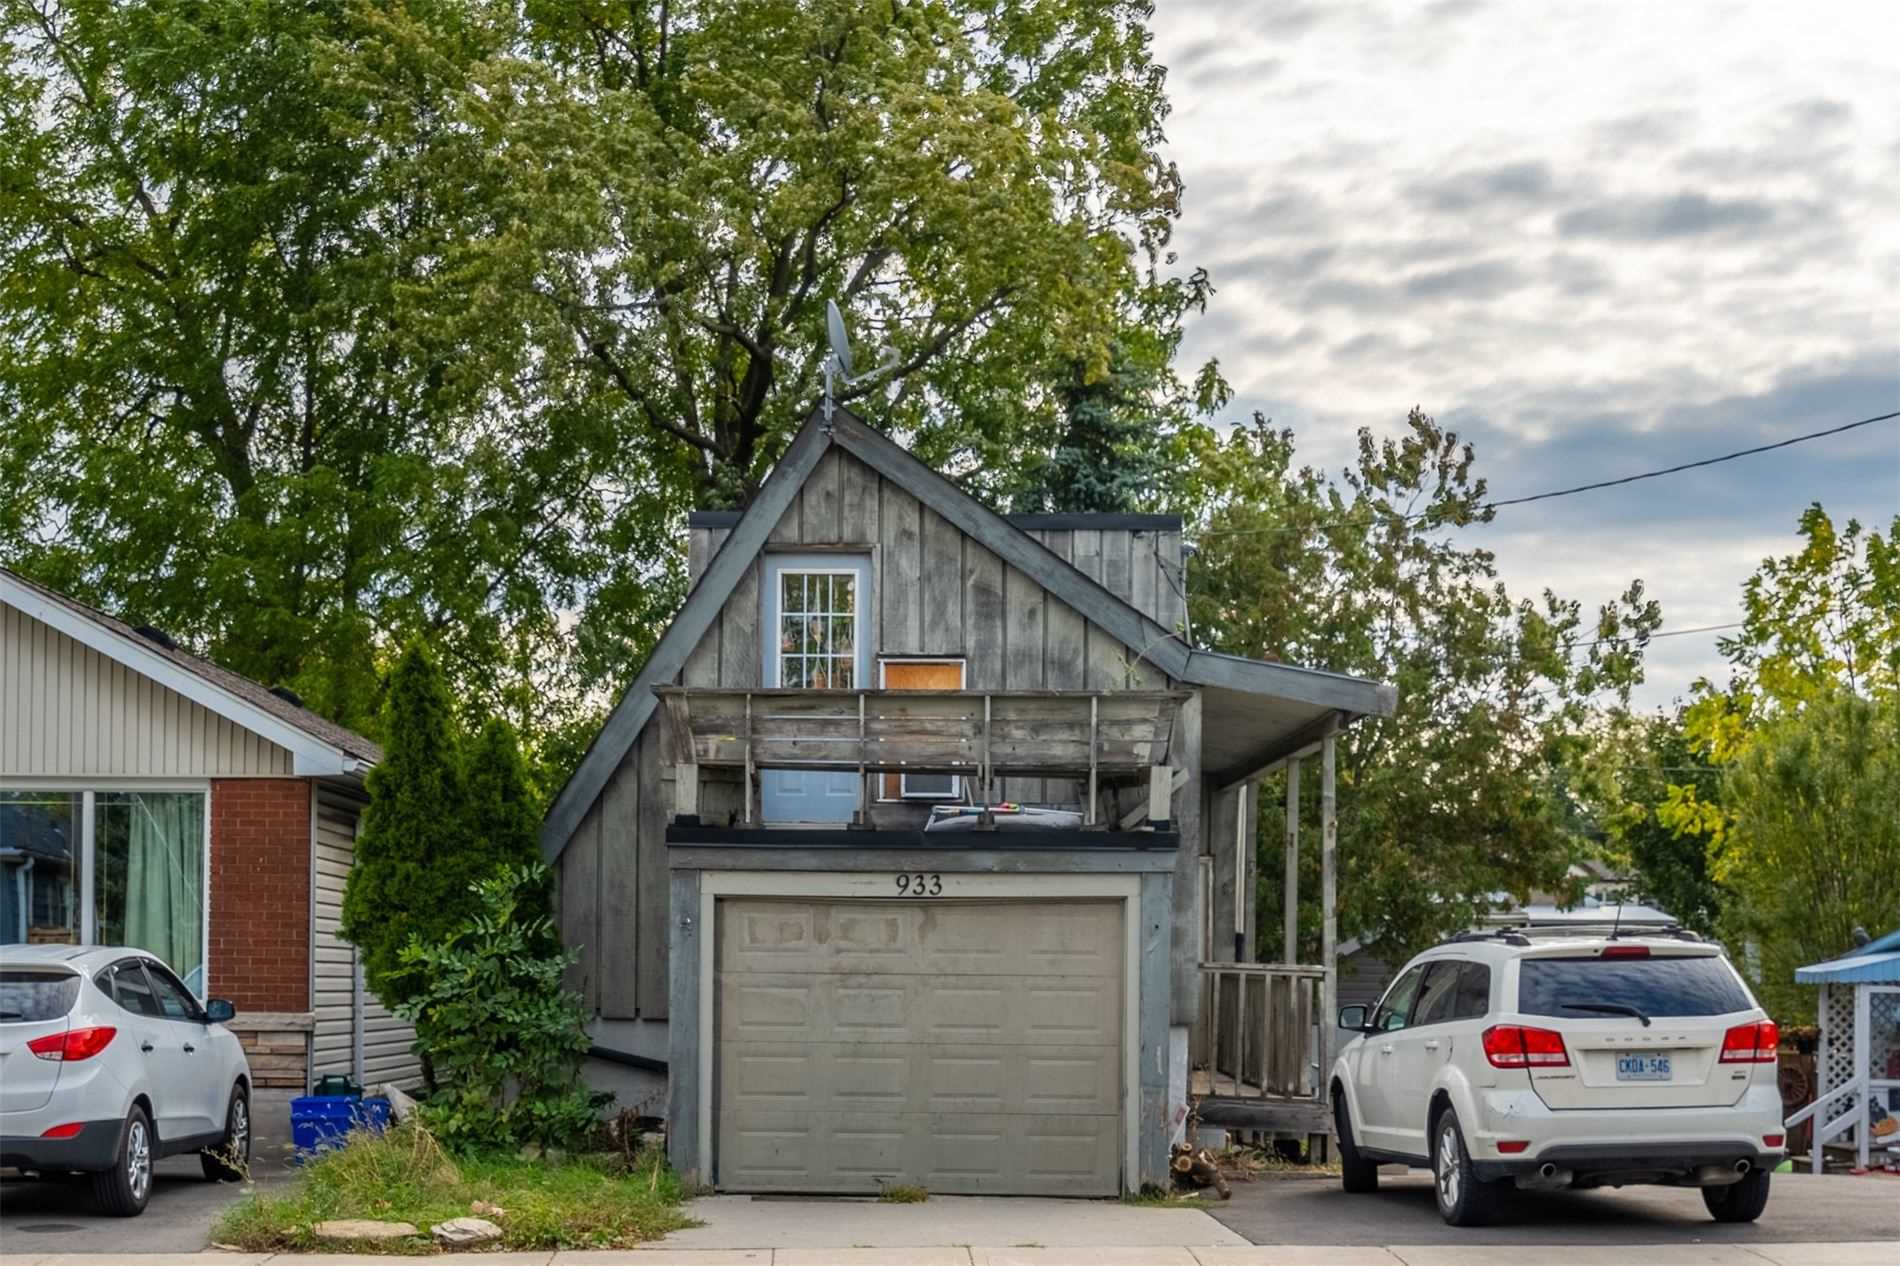 3 Kitchens, 3 Full Baths, 3 Fridges, 3 Stoves, 2 Washers, 2 Dryers, Gas Furnace 3 Years Old, Central Ac 2020, Updated Shingles, Omni Basement System,Transferrable Lifetime Warranty, Updated Basement. Rented At $1500,$1100, $1400 All Inclusive.